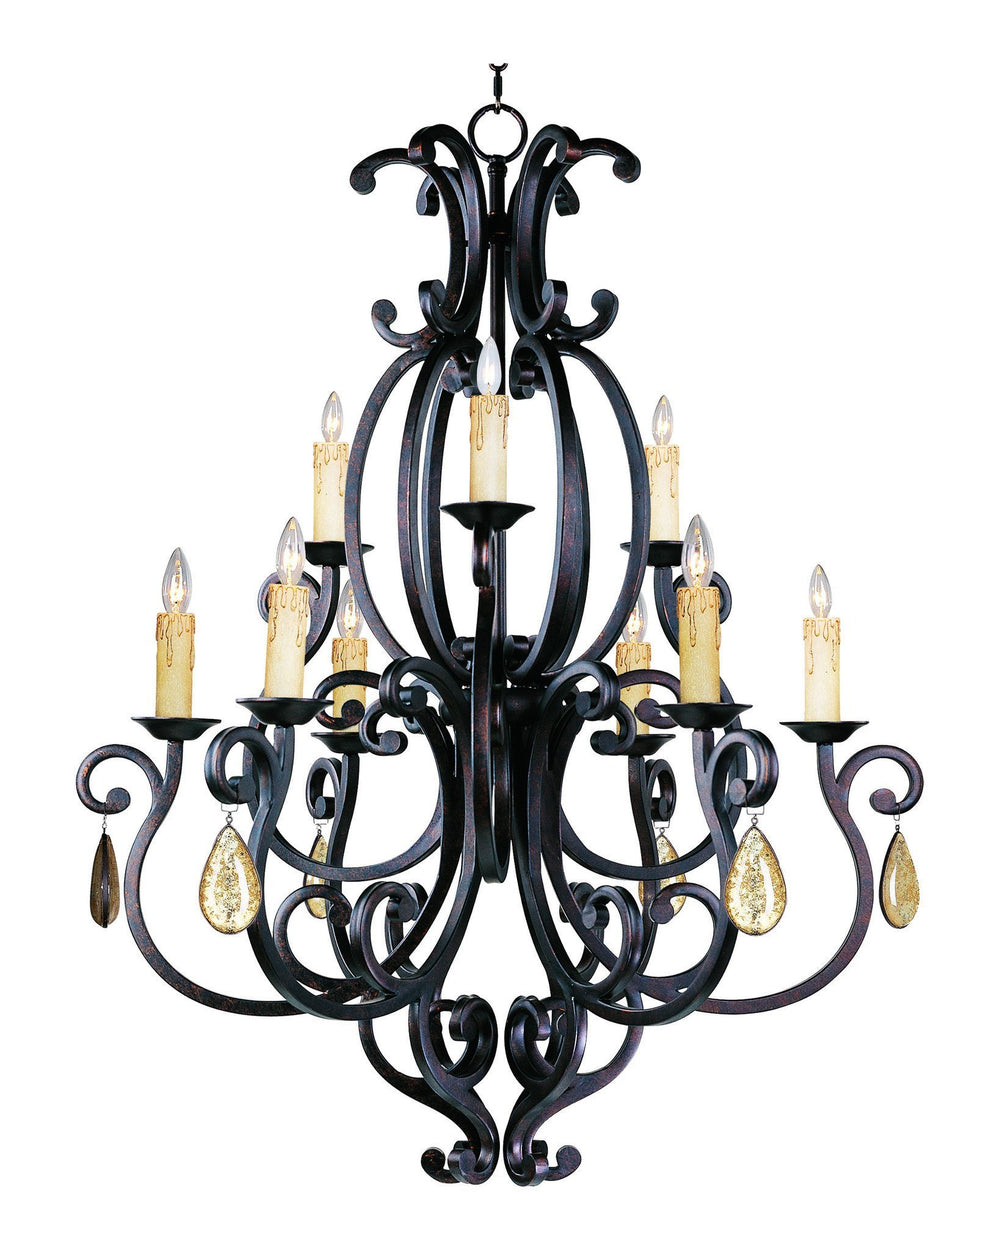 Maxim CRY09431006CU/ Richmond 9-Light Chandelier with Crystals & Shades